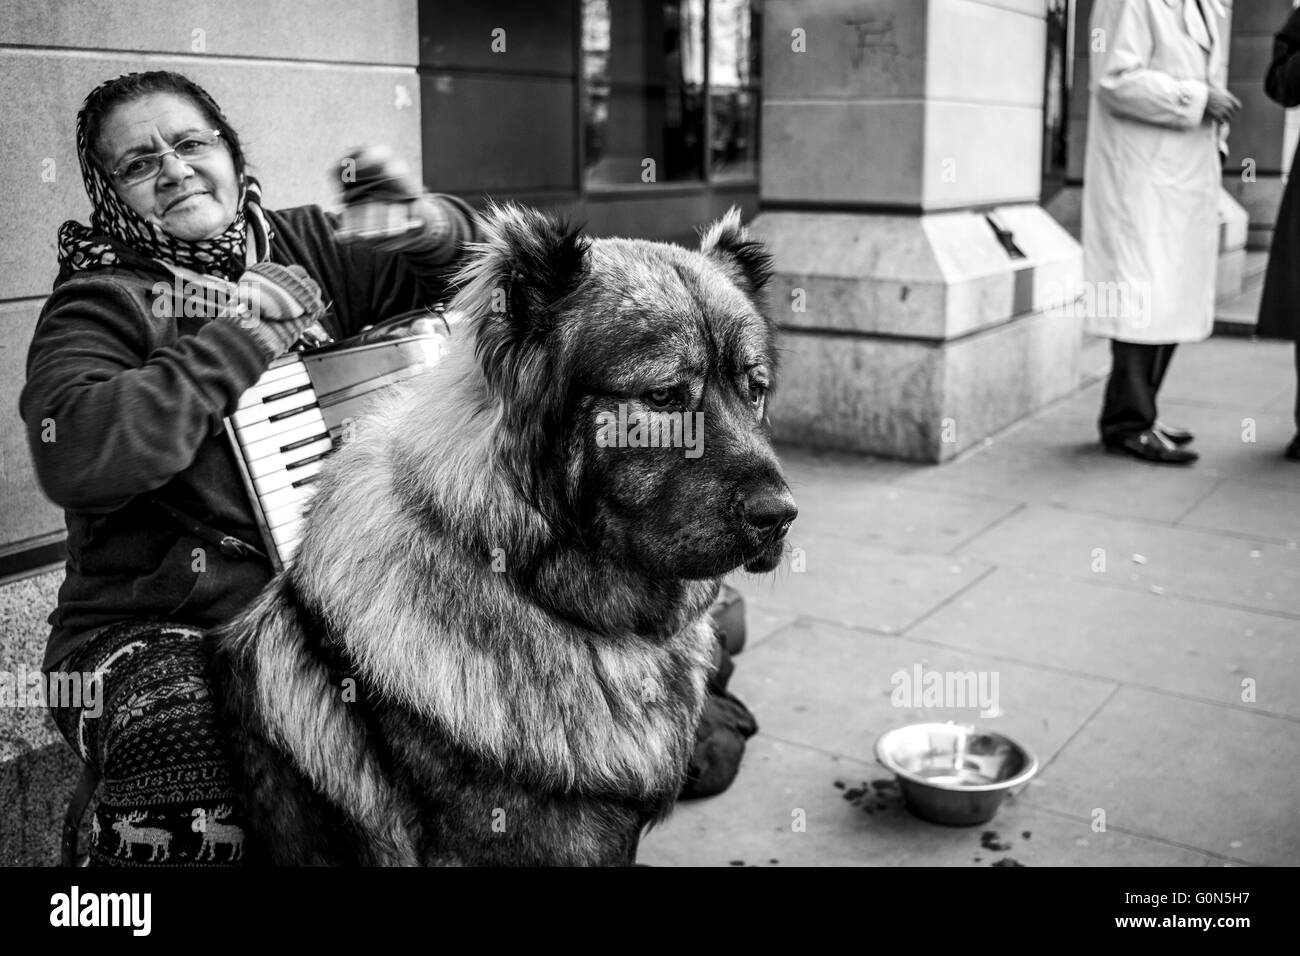 Homeless woman playing the accordion, with large dog, Westminster, London Stock Photo